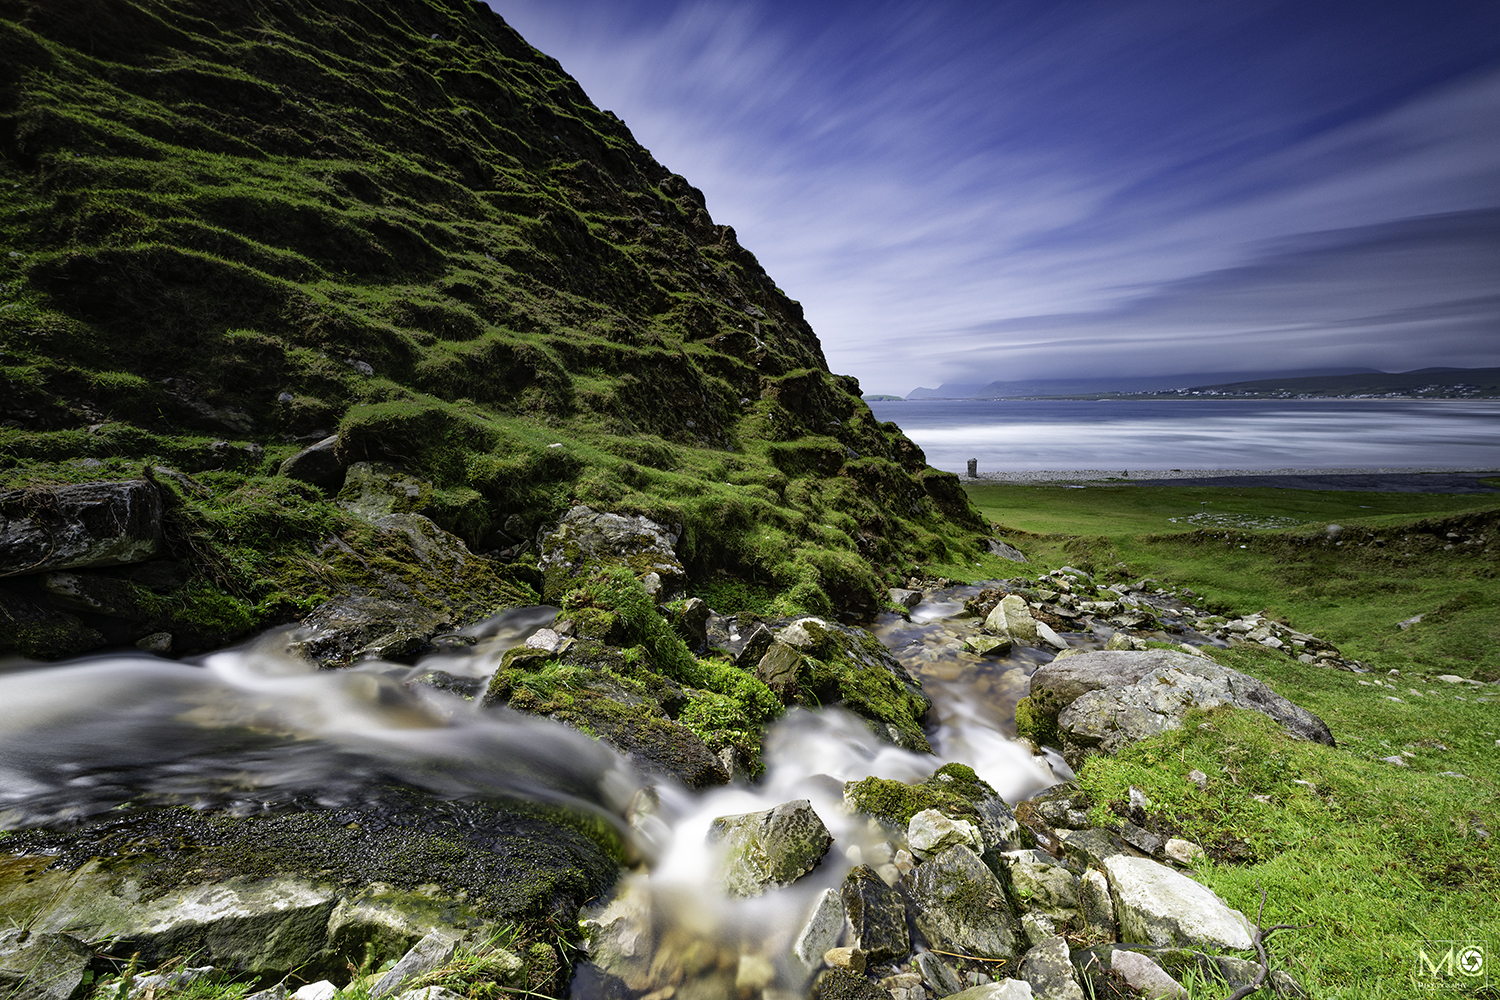 River flowing out to sea at Keel Strand, Achill Island, Co. Mayo, Ireland